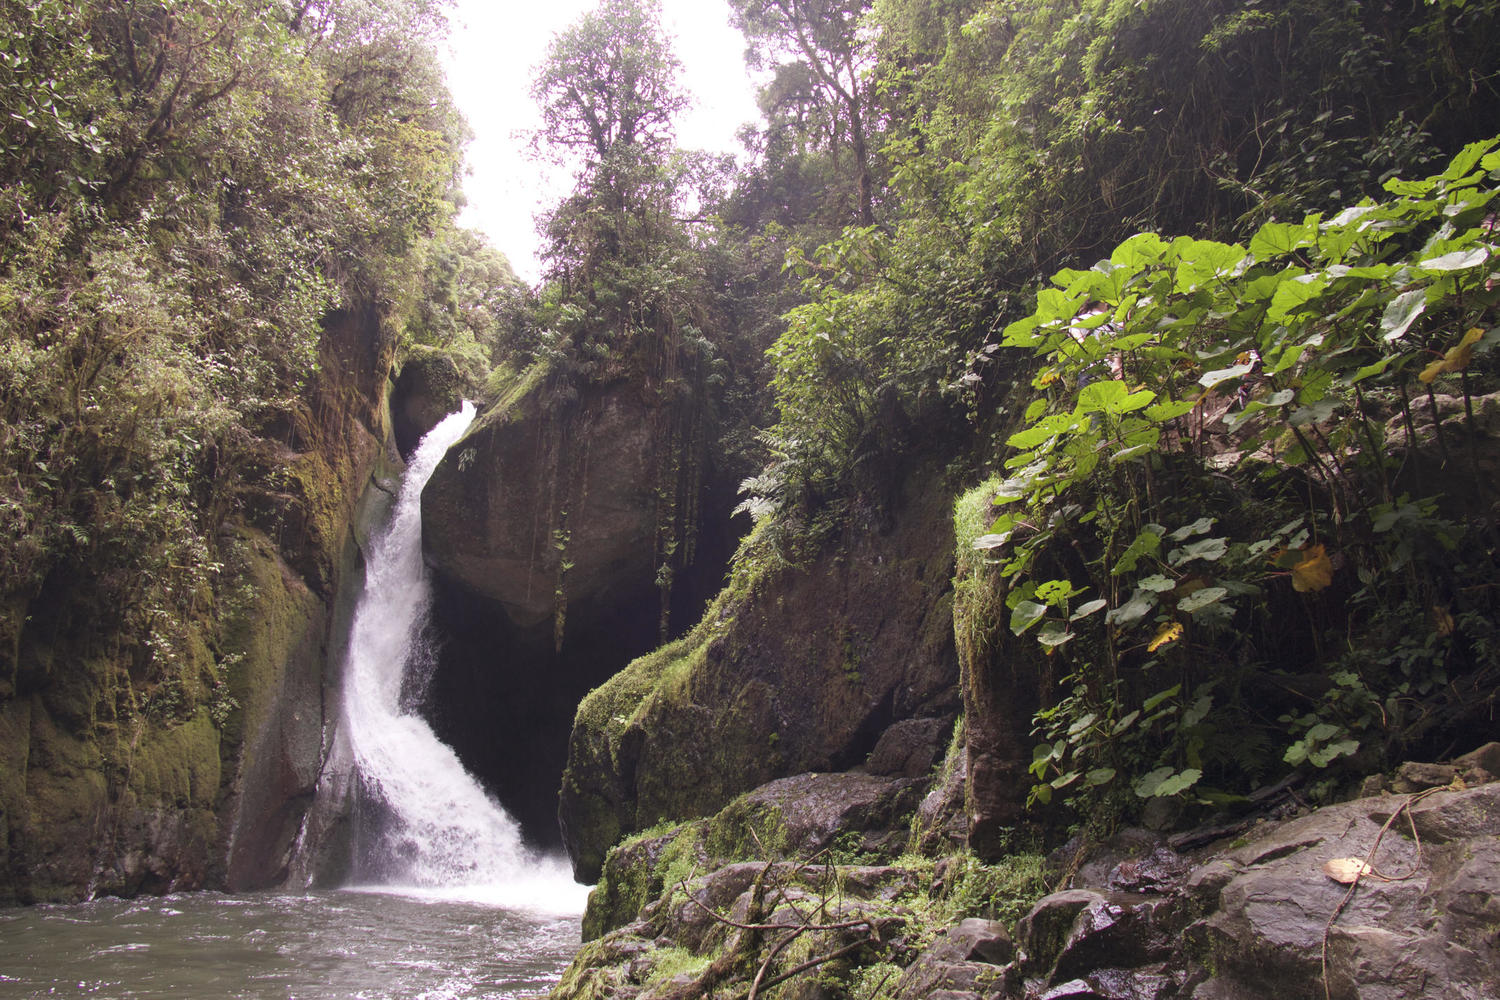 The lovely Savegre waterfall in the San Gerardo cloudfores